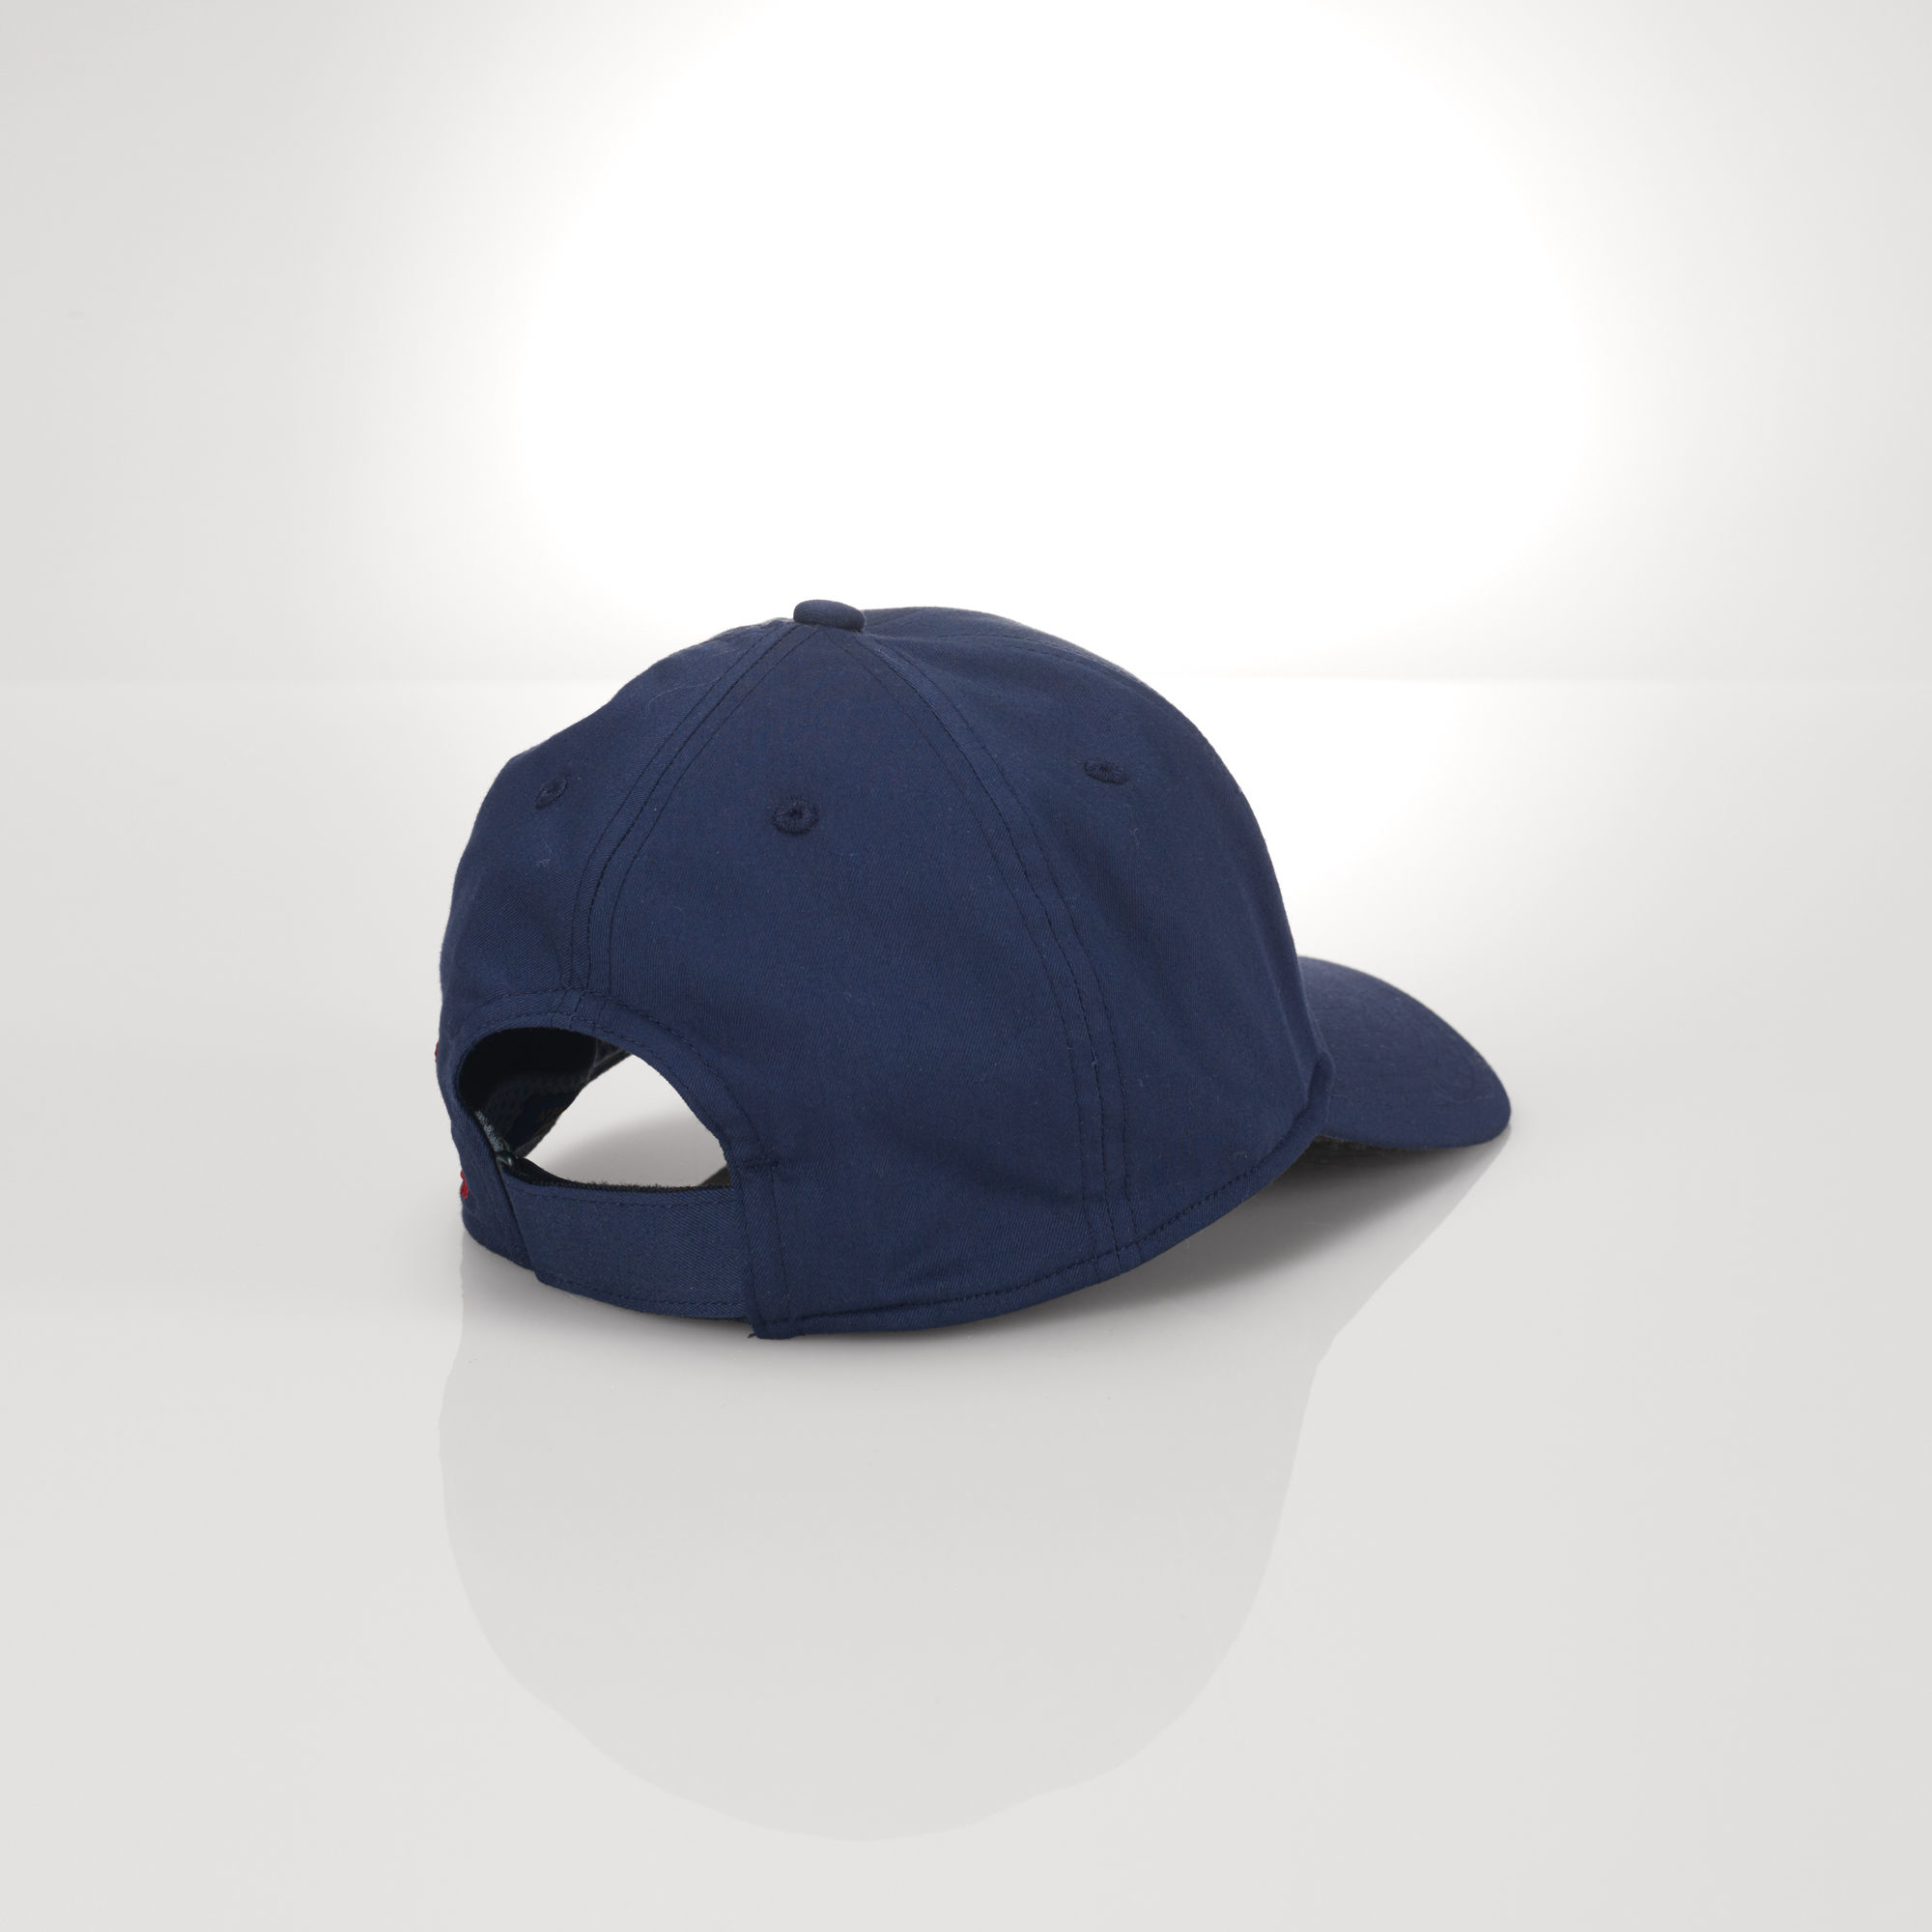 931adbfad167c Ralph Lauren Us Open Patch Baseline Hat in Blue for Men - Lyst